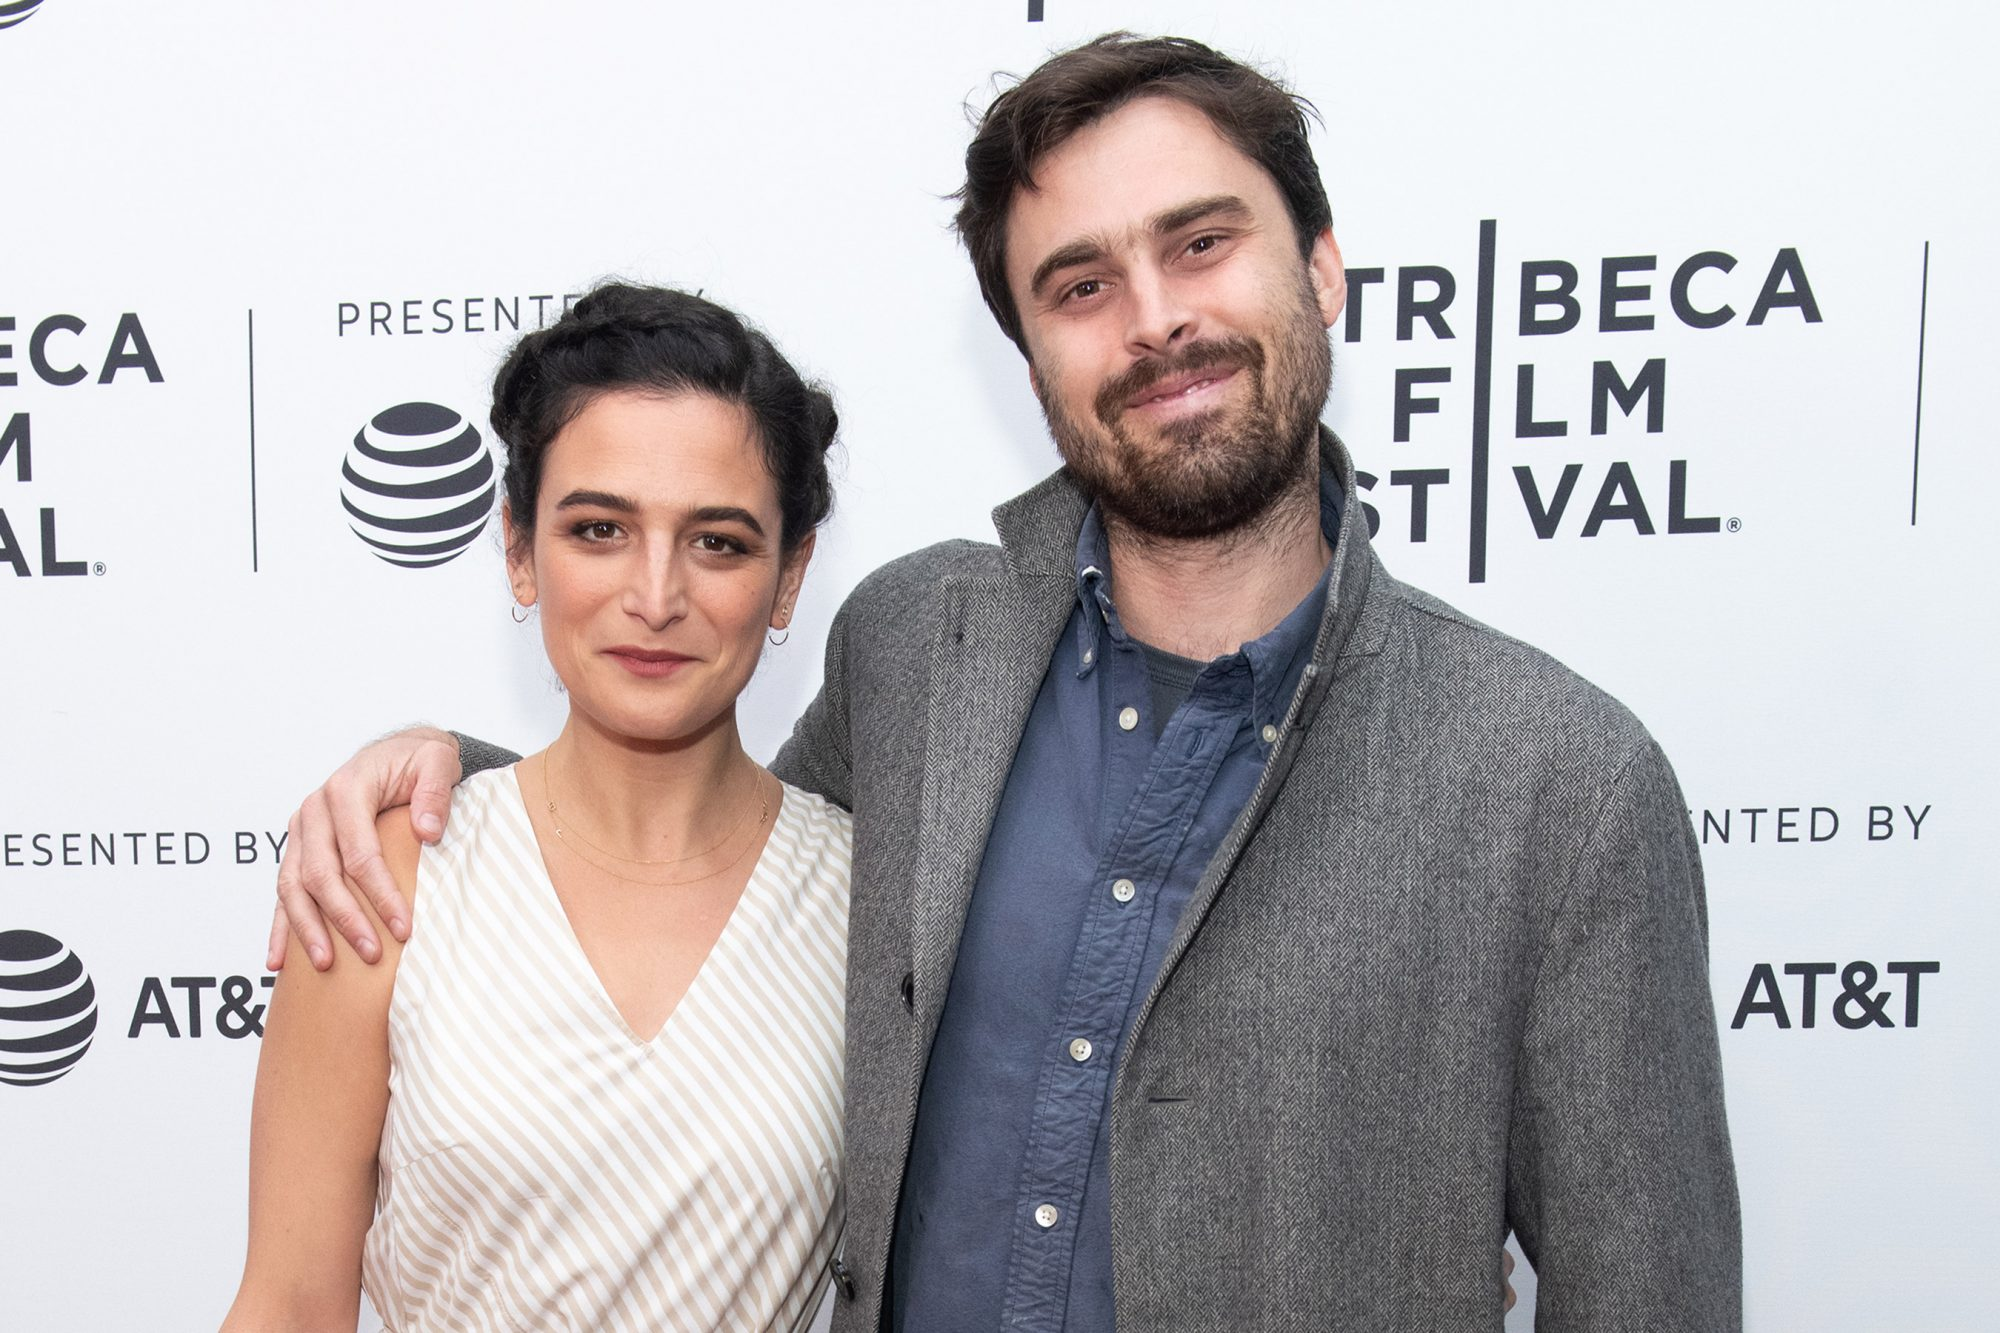 Jenny Slate and Ben Shattuck